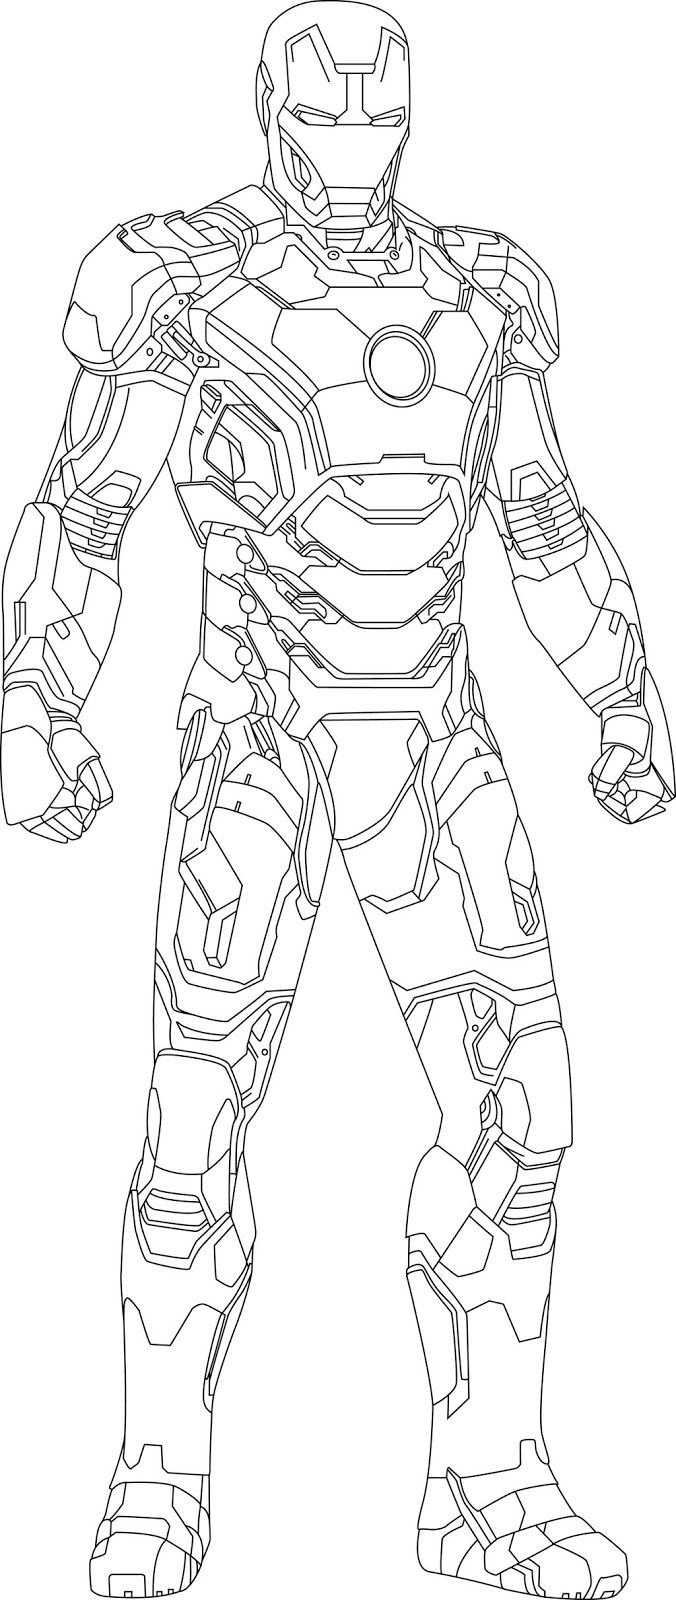 iron coloring page fighting iron man 37dc coloring pages printable page iron coloring